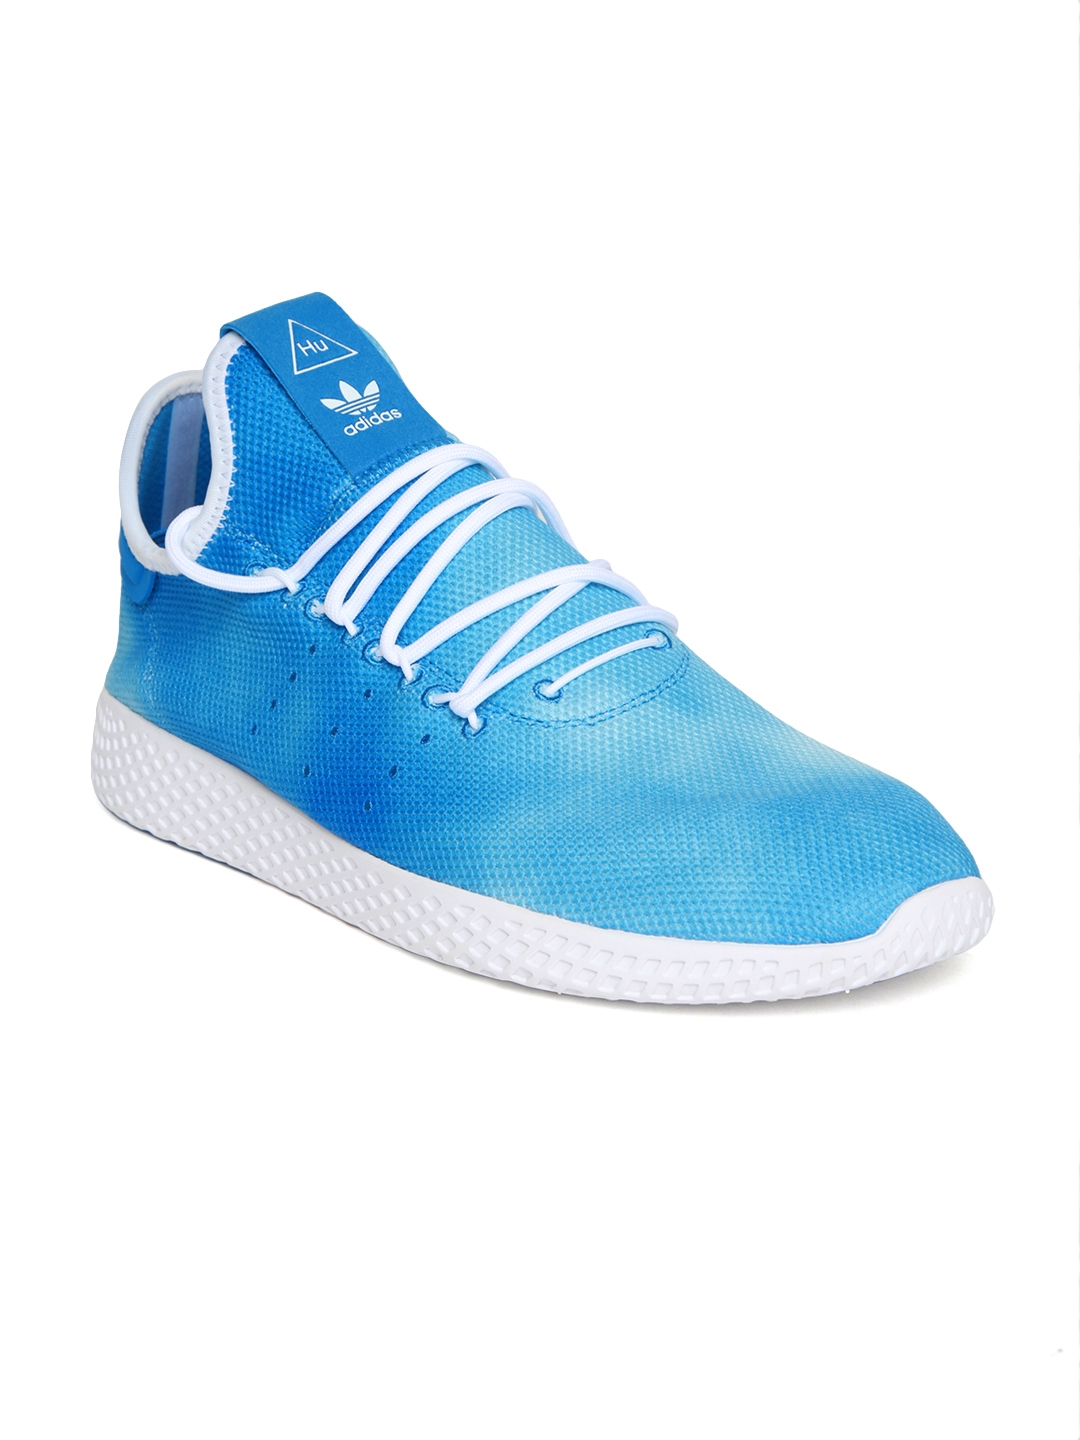 Buy ADIDAS Originals Men Blue PW HU Holi Tennis Sneakers - Casual ... 419d73f4a